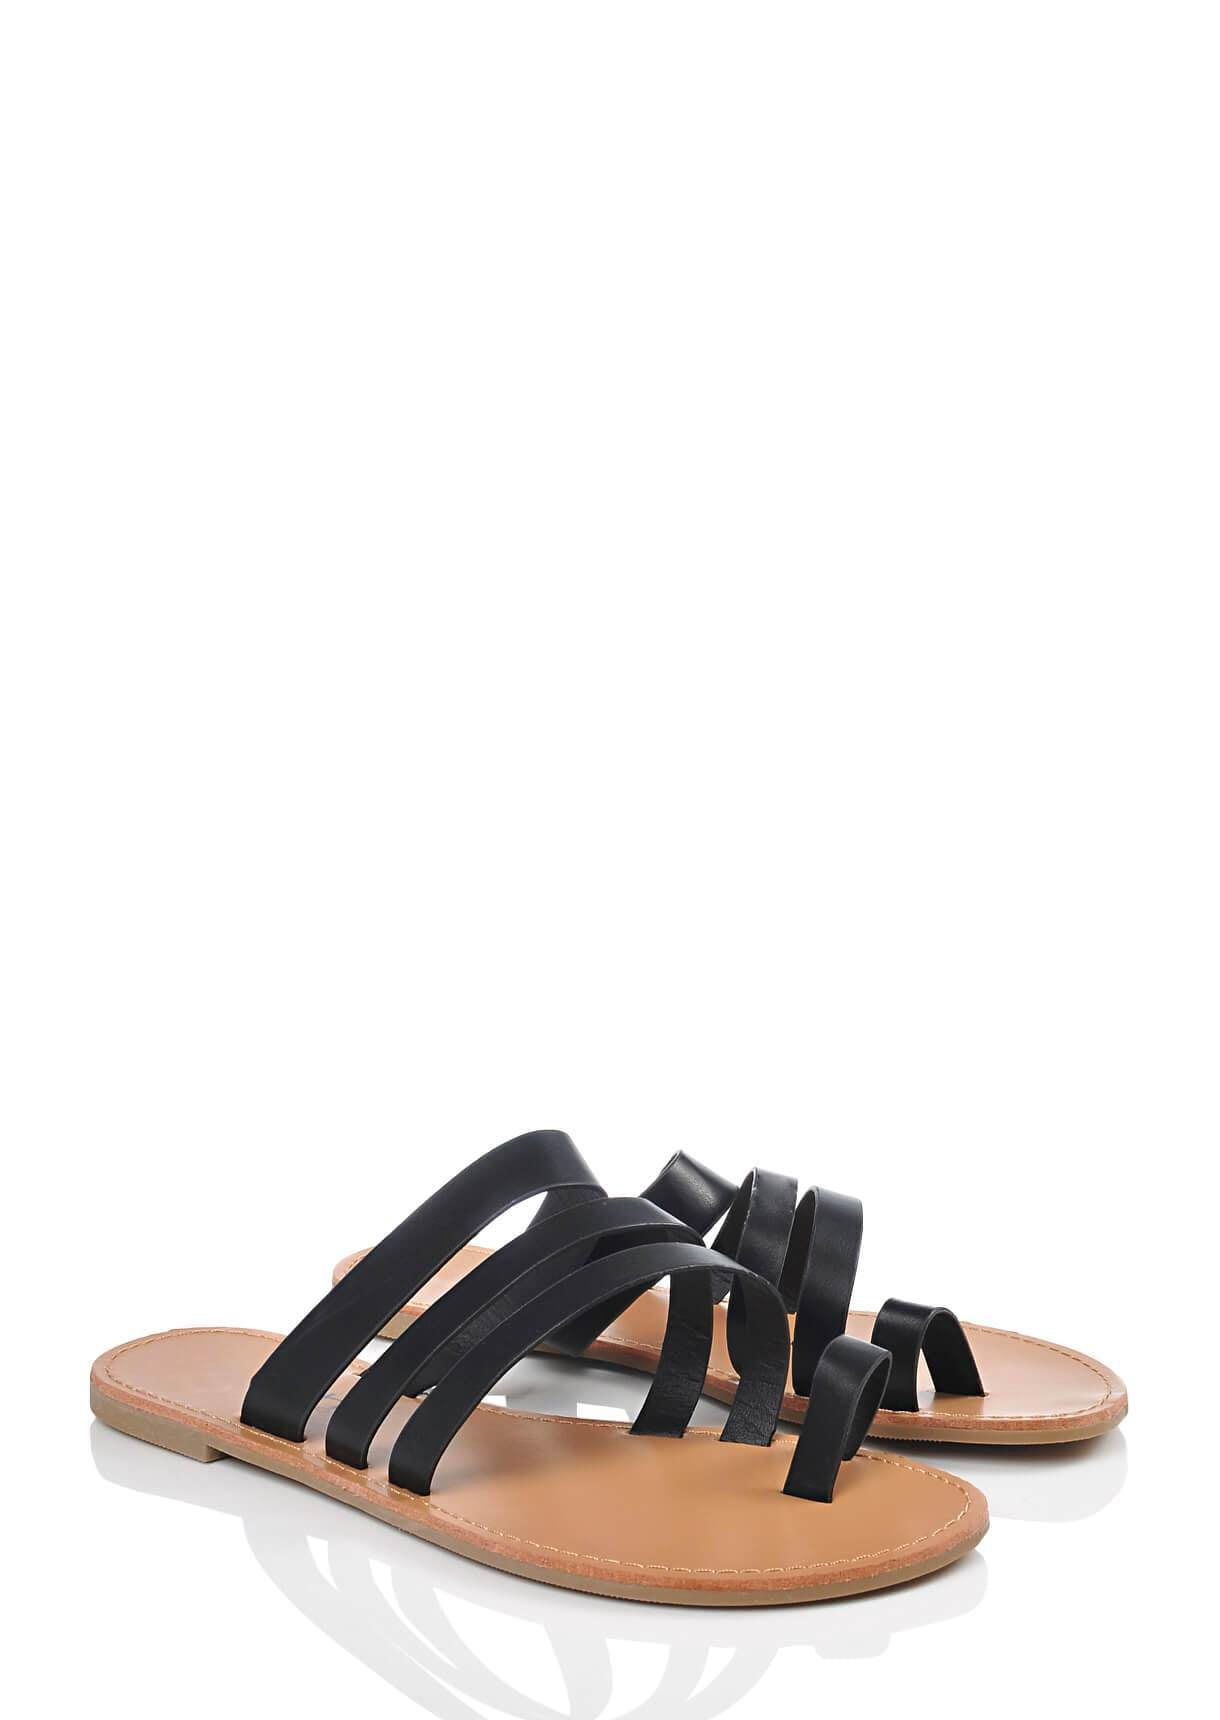 Wide Fit Black Strappy Toe Post Sandals